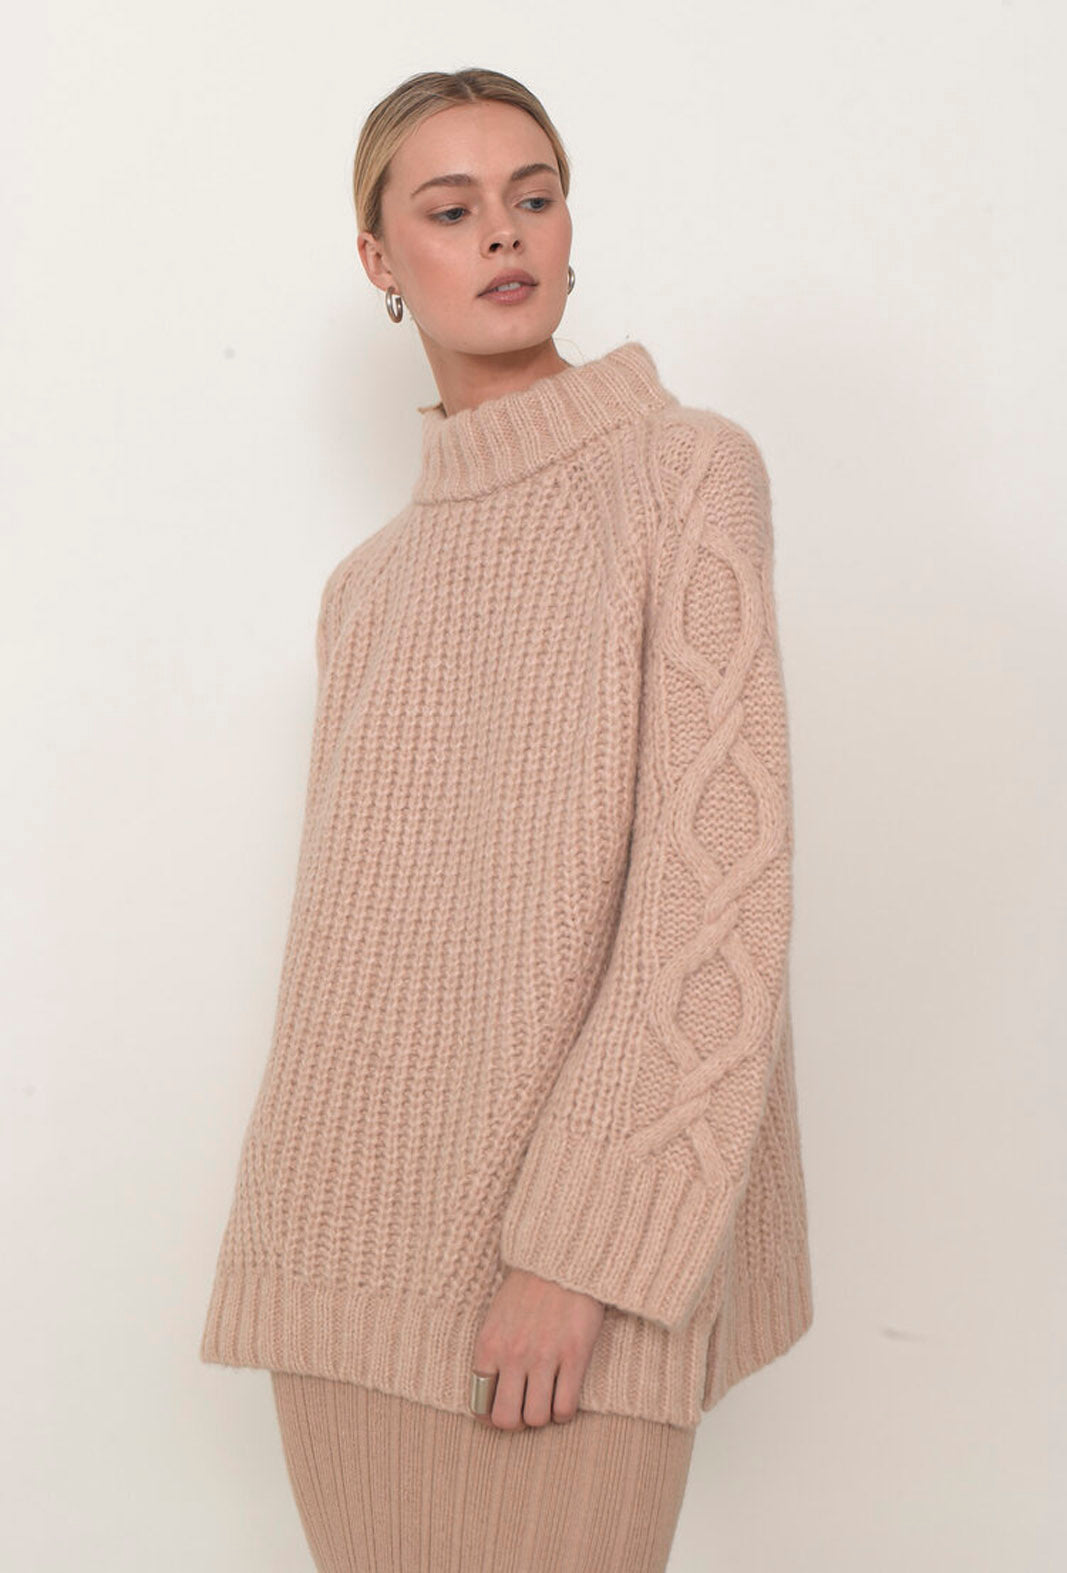 ELEVEN SIX CLARE SWEATER, PALE CAMEL